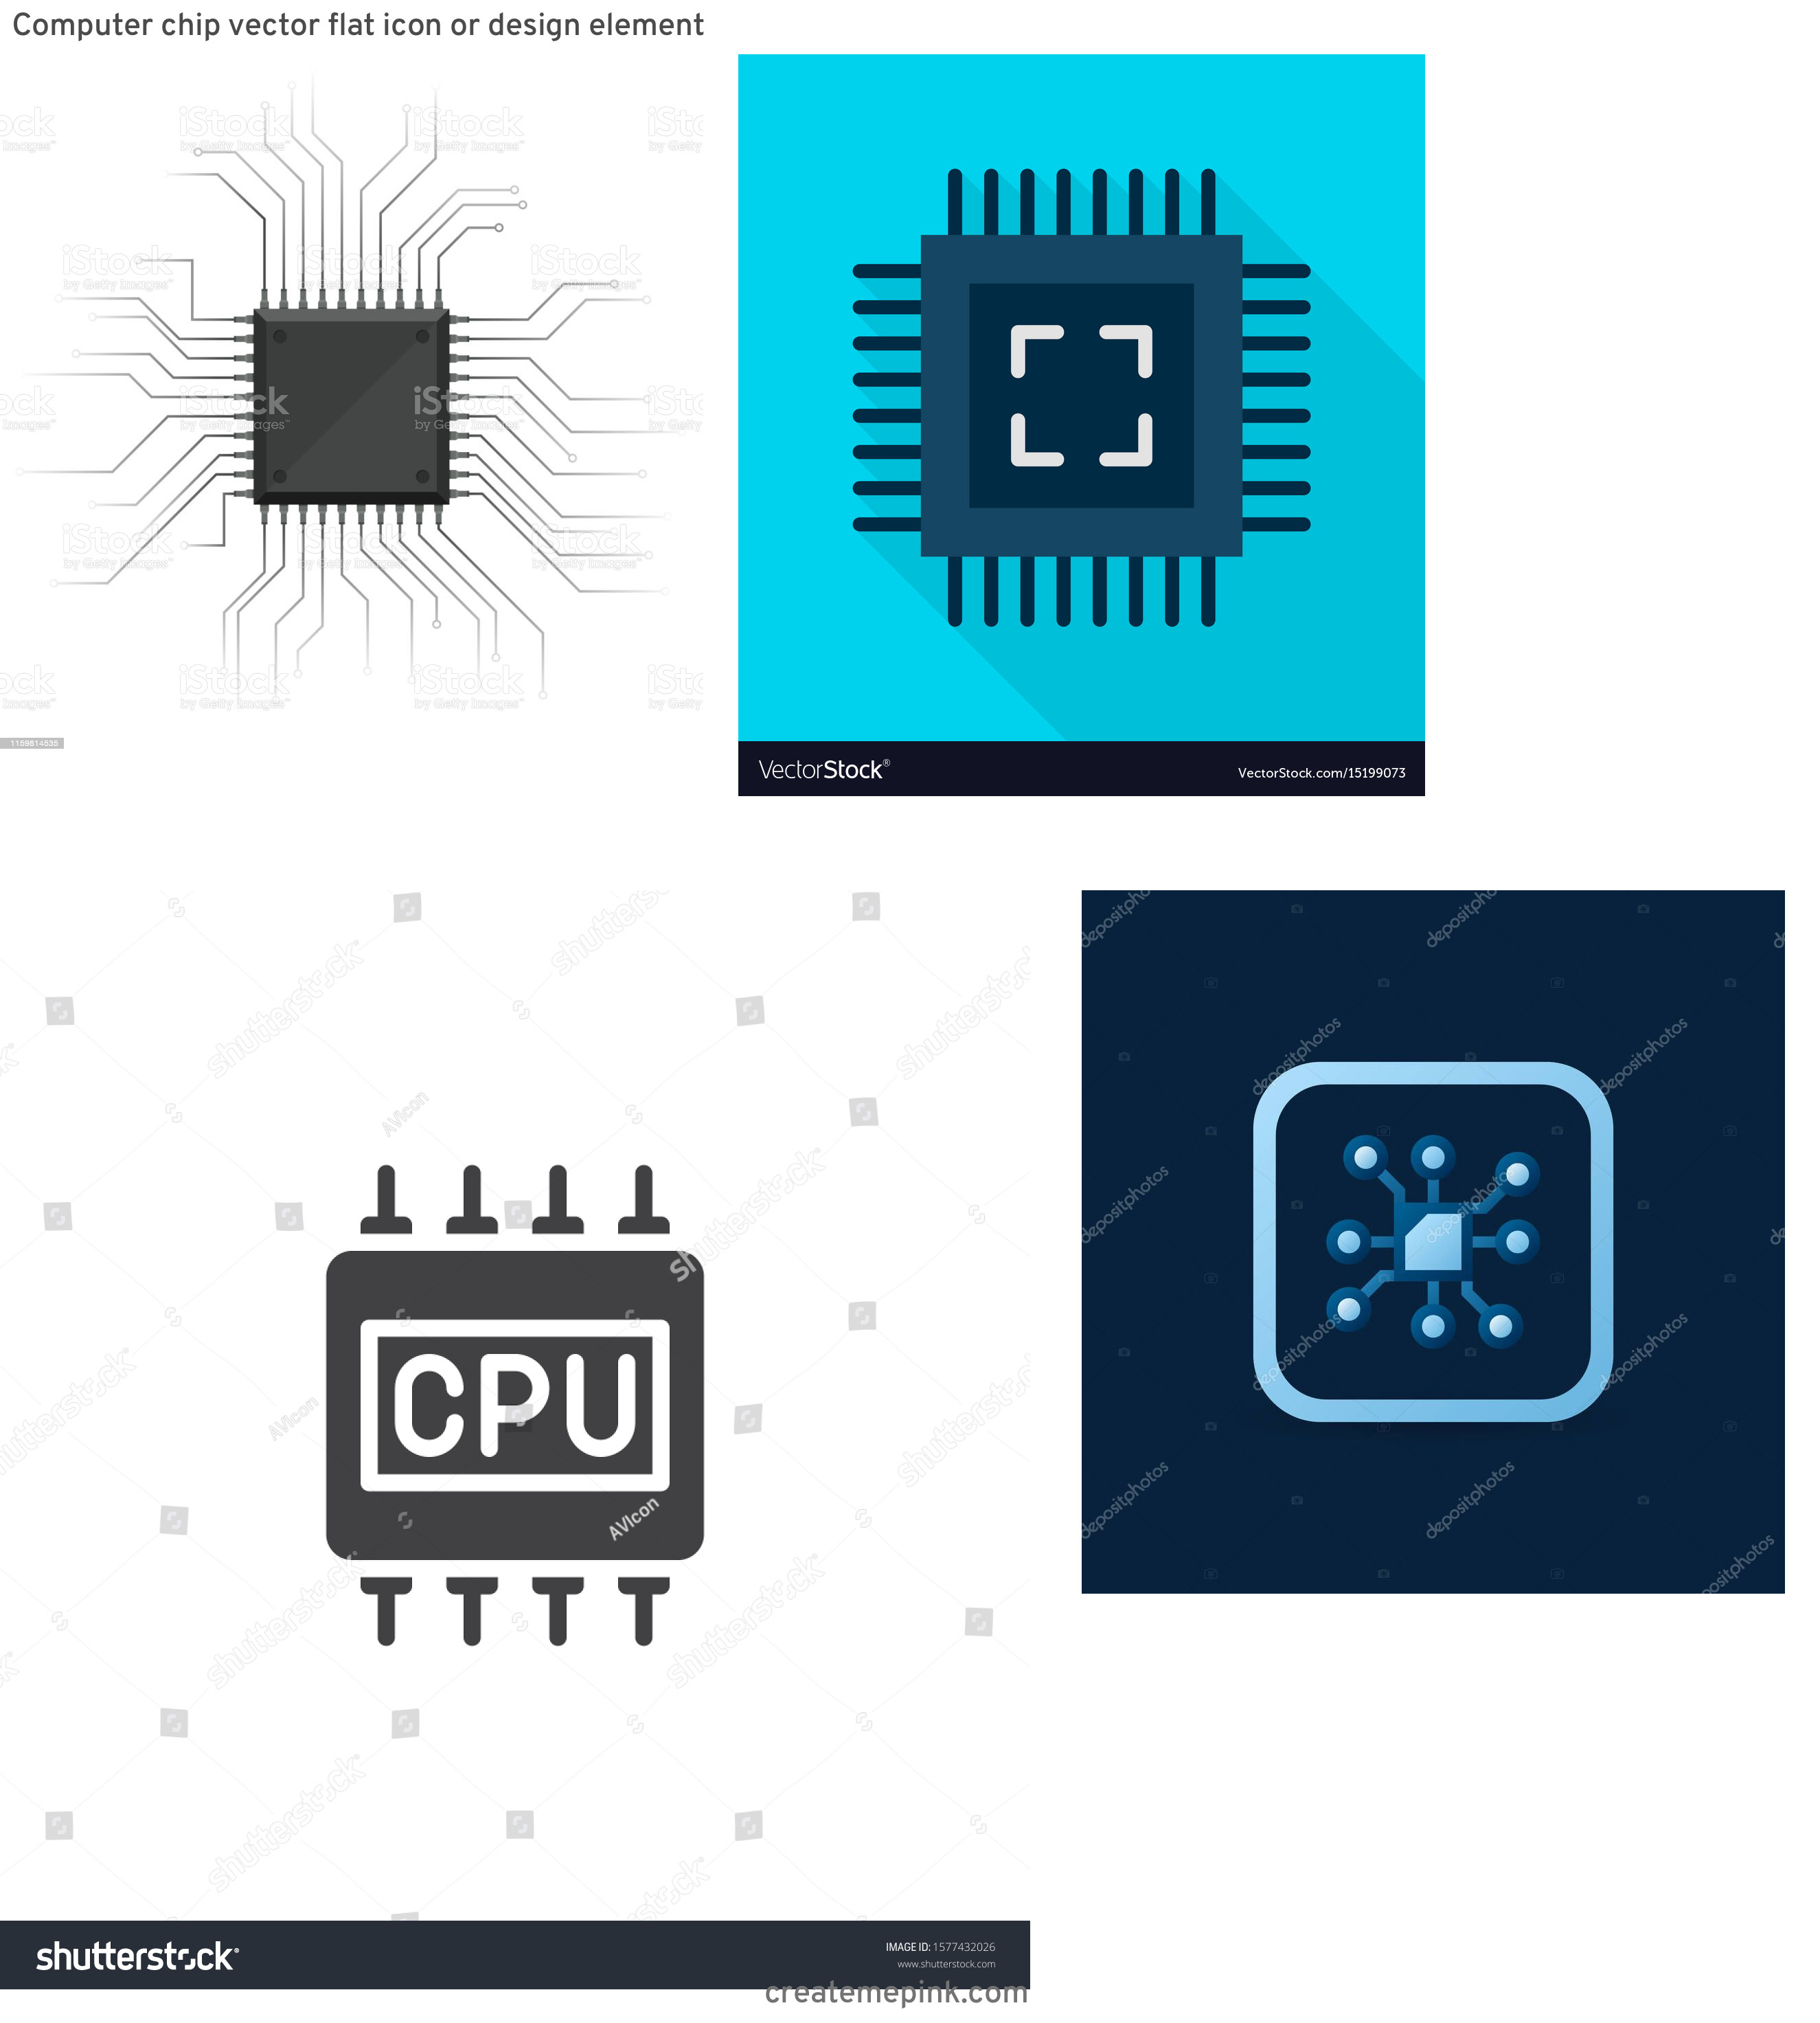 Computer Chip Vector: Computer Chip Vector Flat Icon Or Design Element